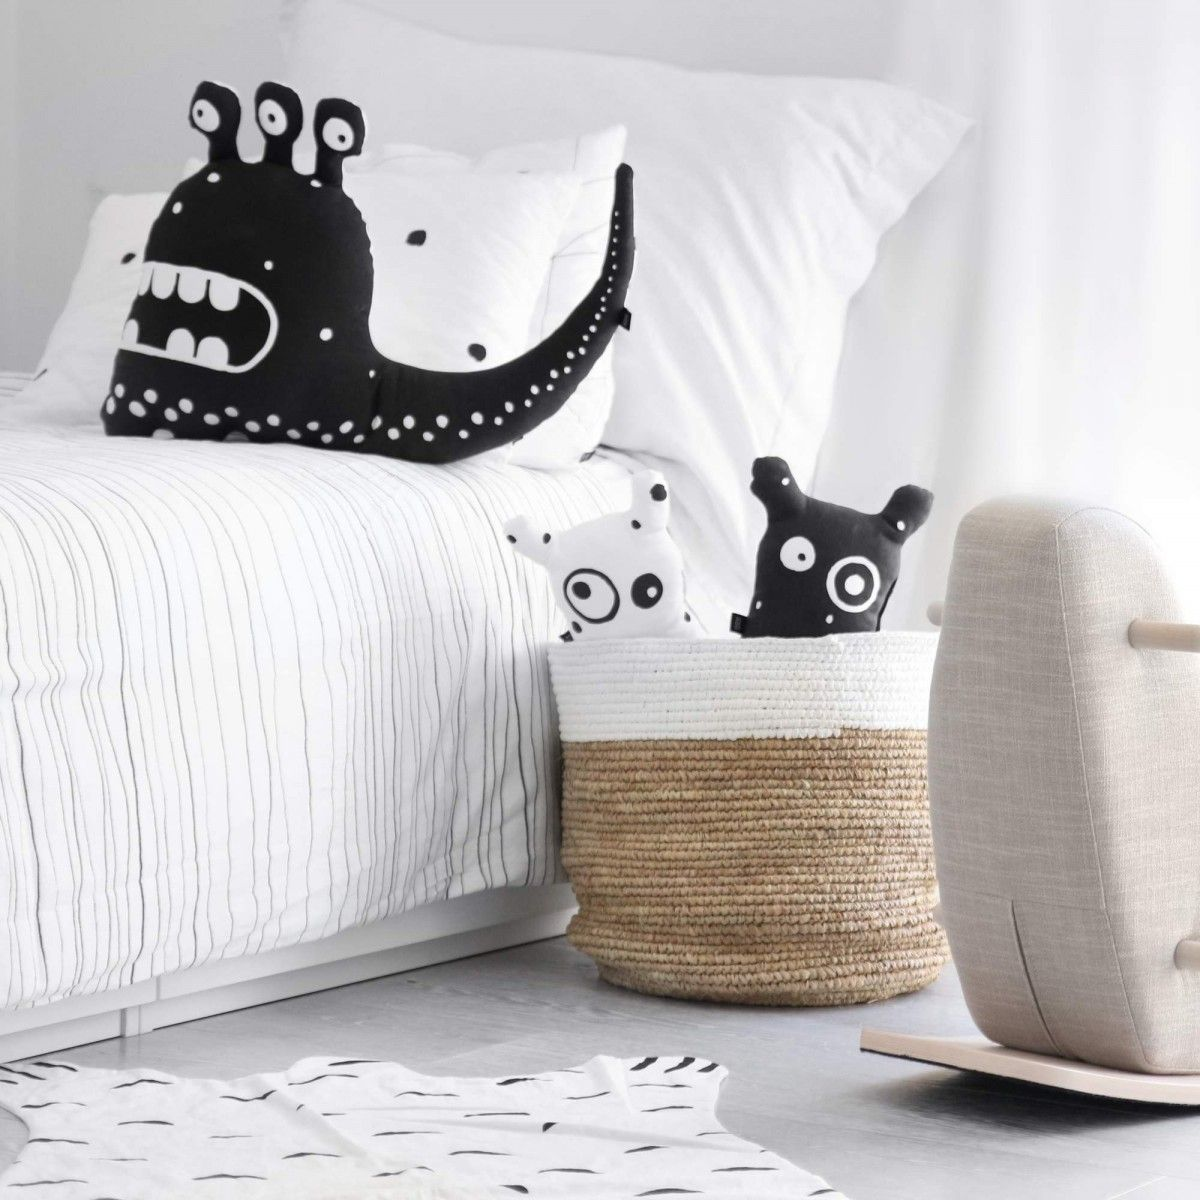 These cutely creepy monster pillows look like musthaves